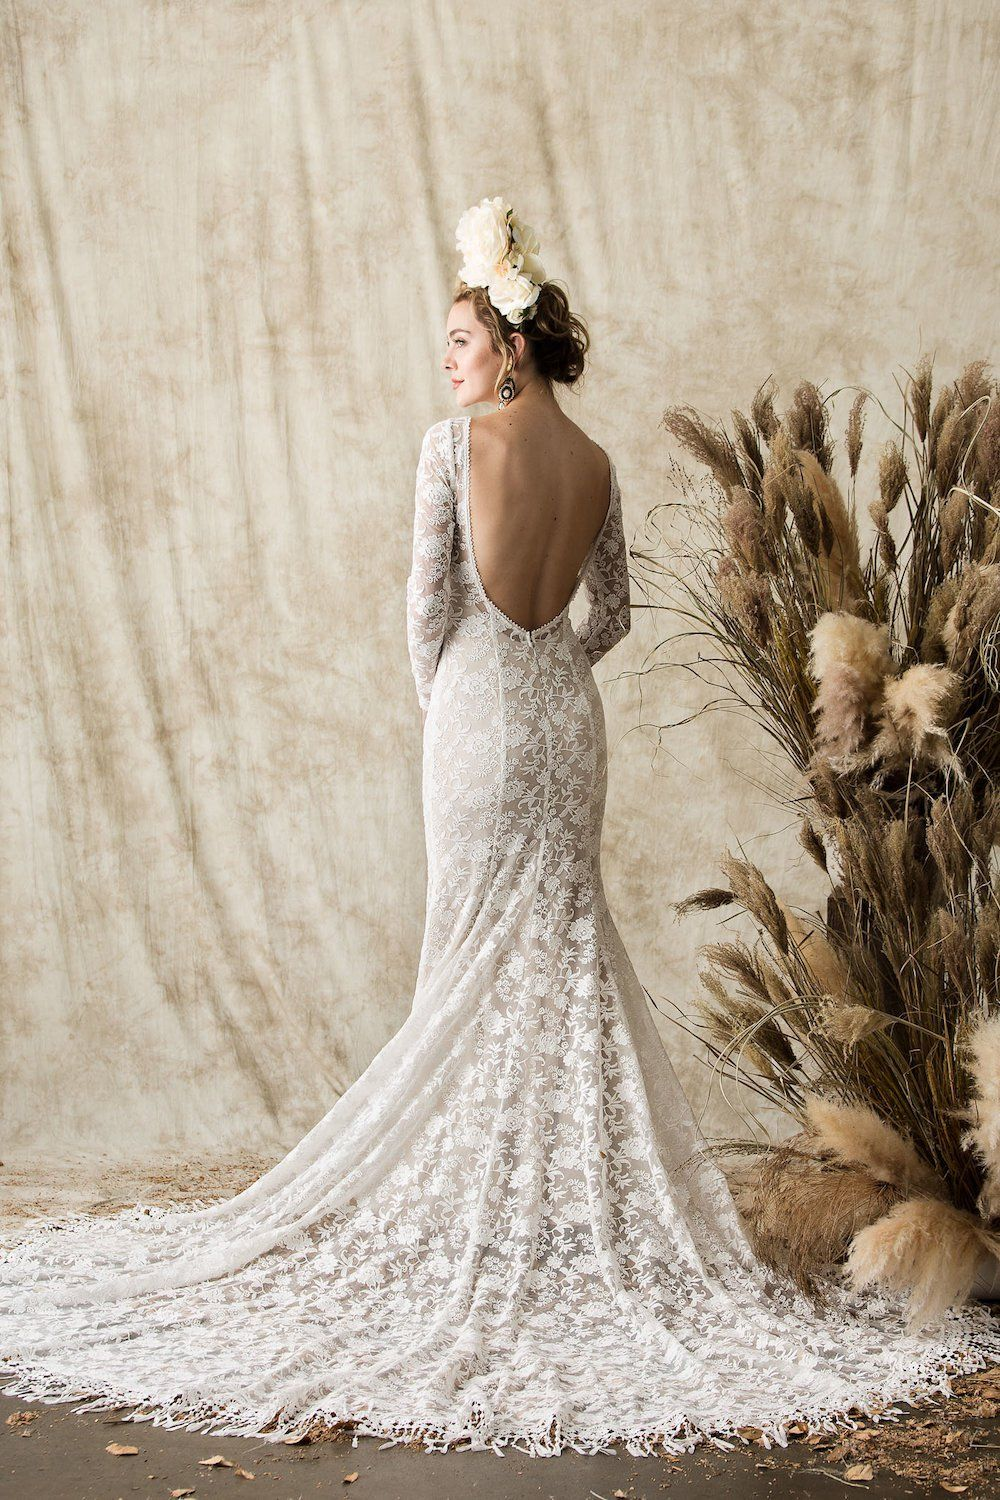 Offwhiteembroideredlaceweddingdresswithlongsleeves wedding